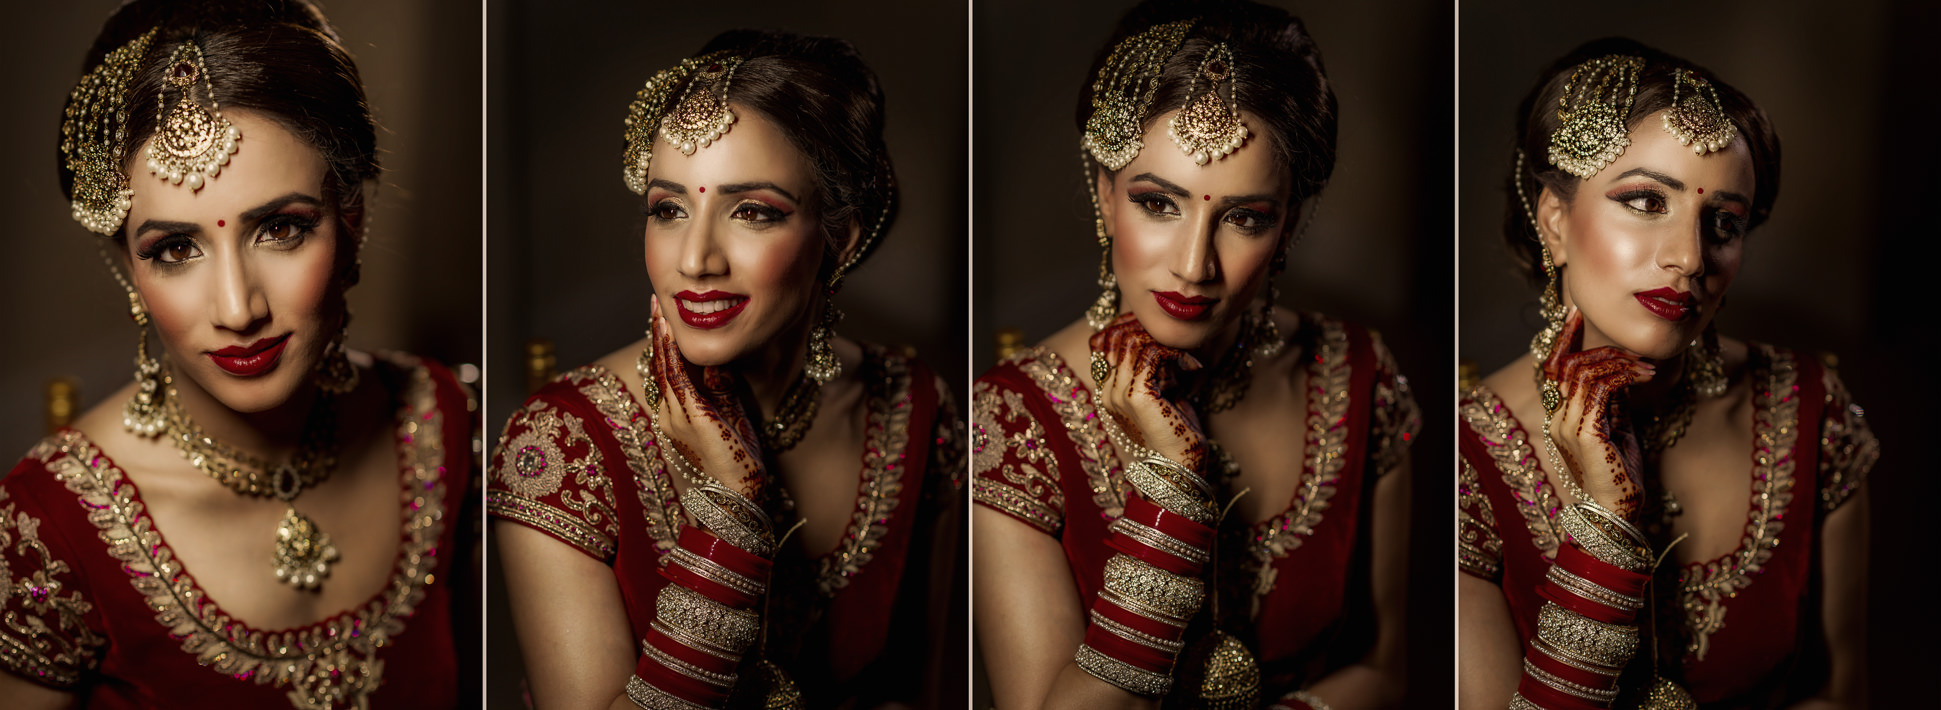 indian-wedding-photographer-sikh-4-of-43